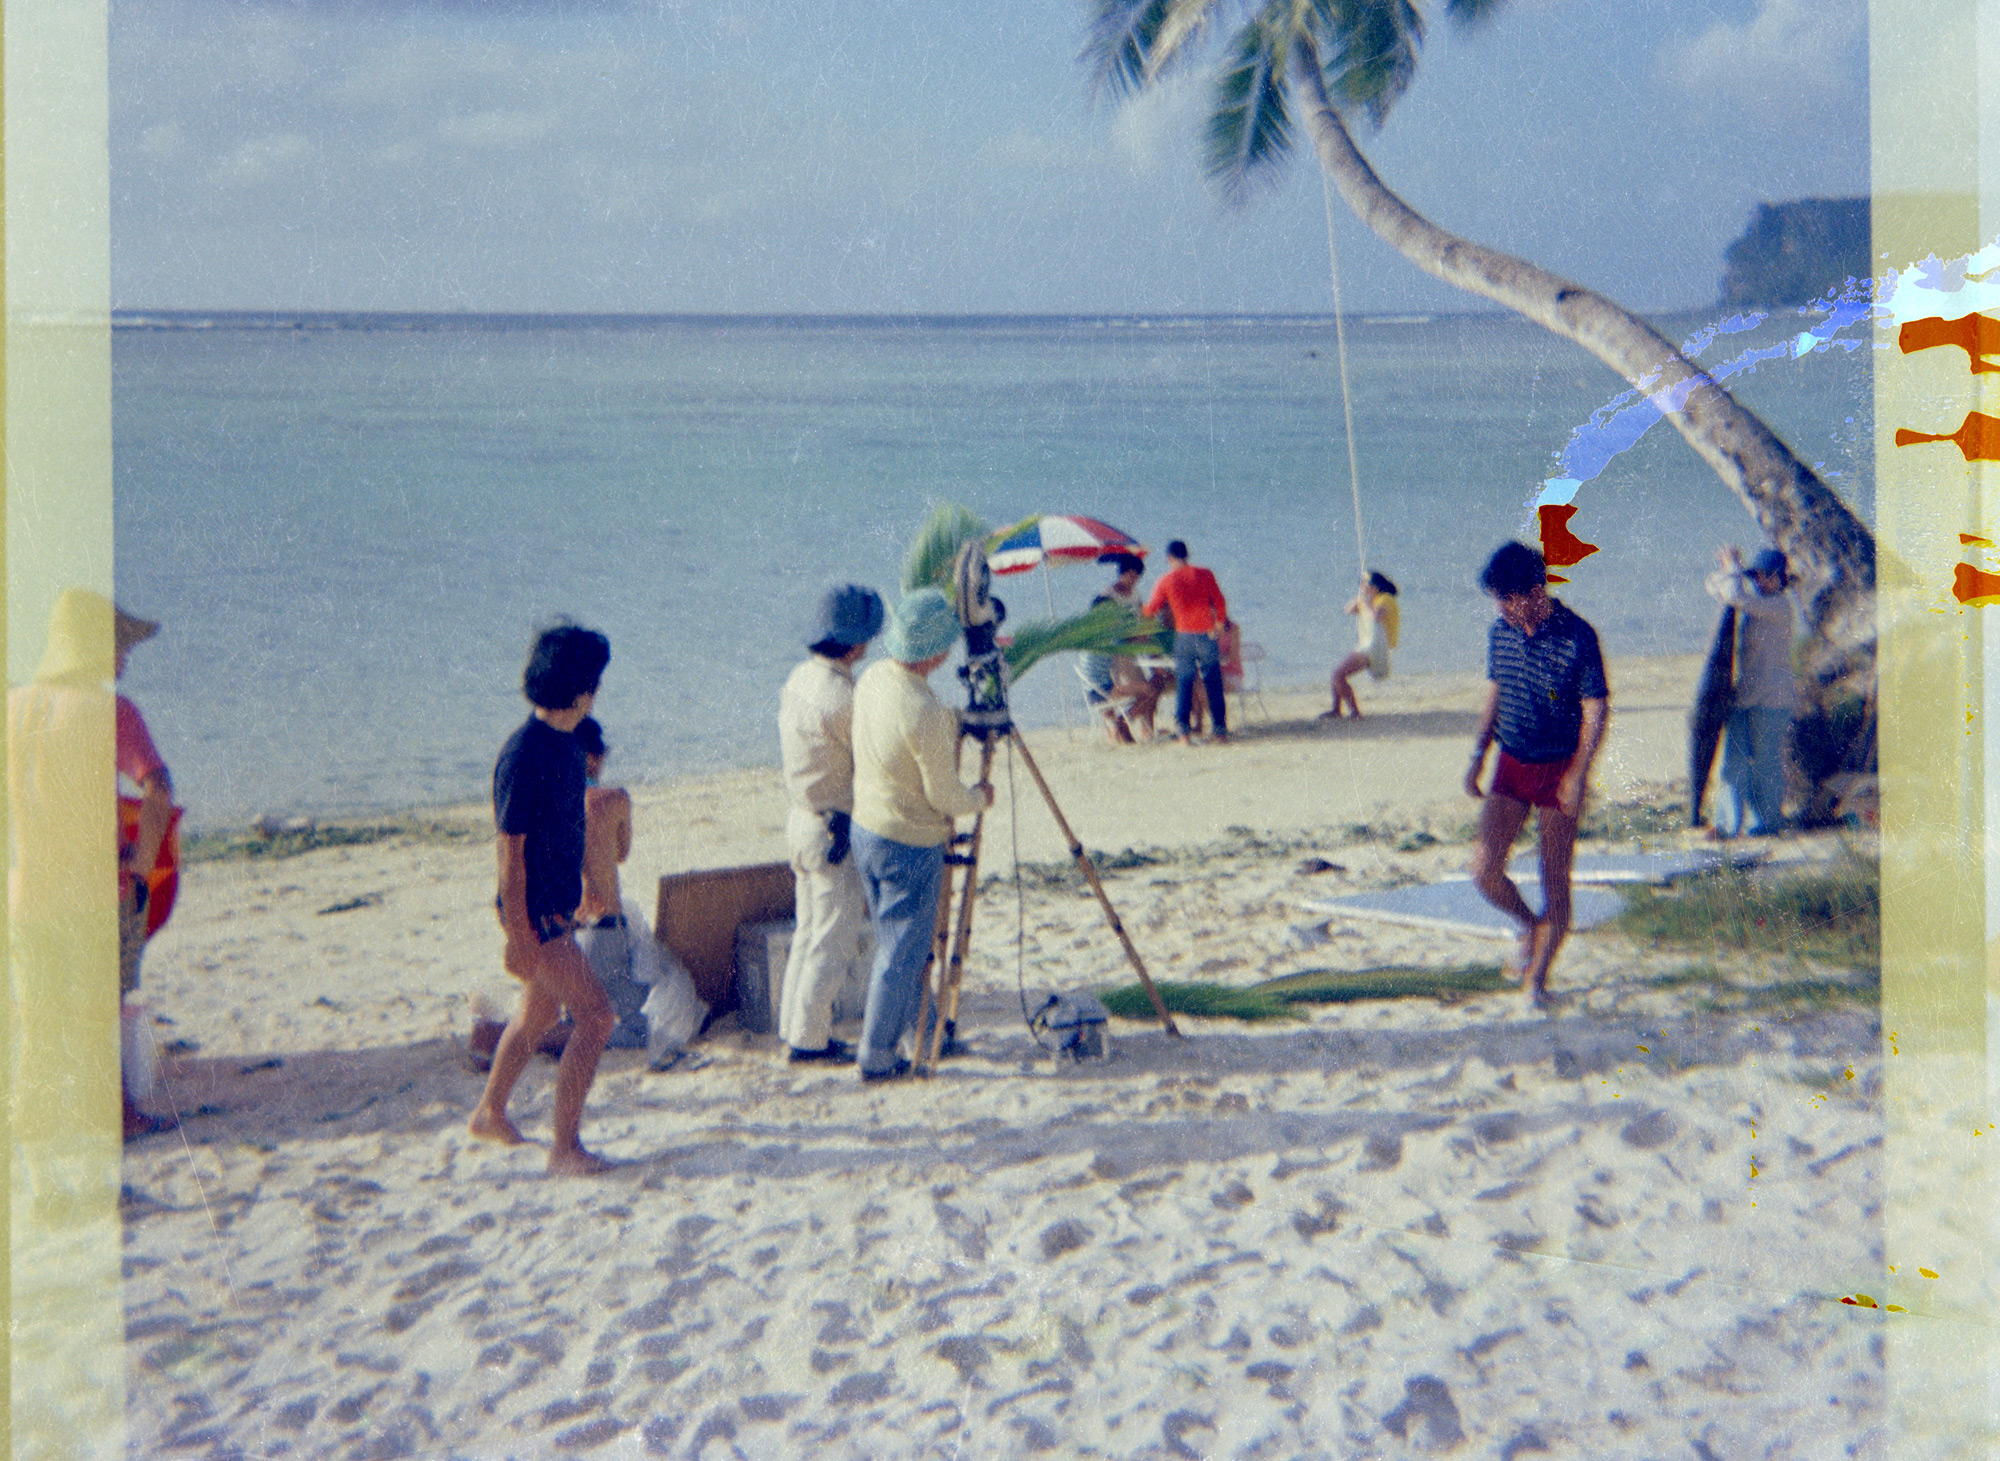 film-shoot-on-a-beach_ZC.jpg